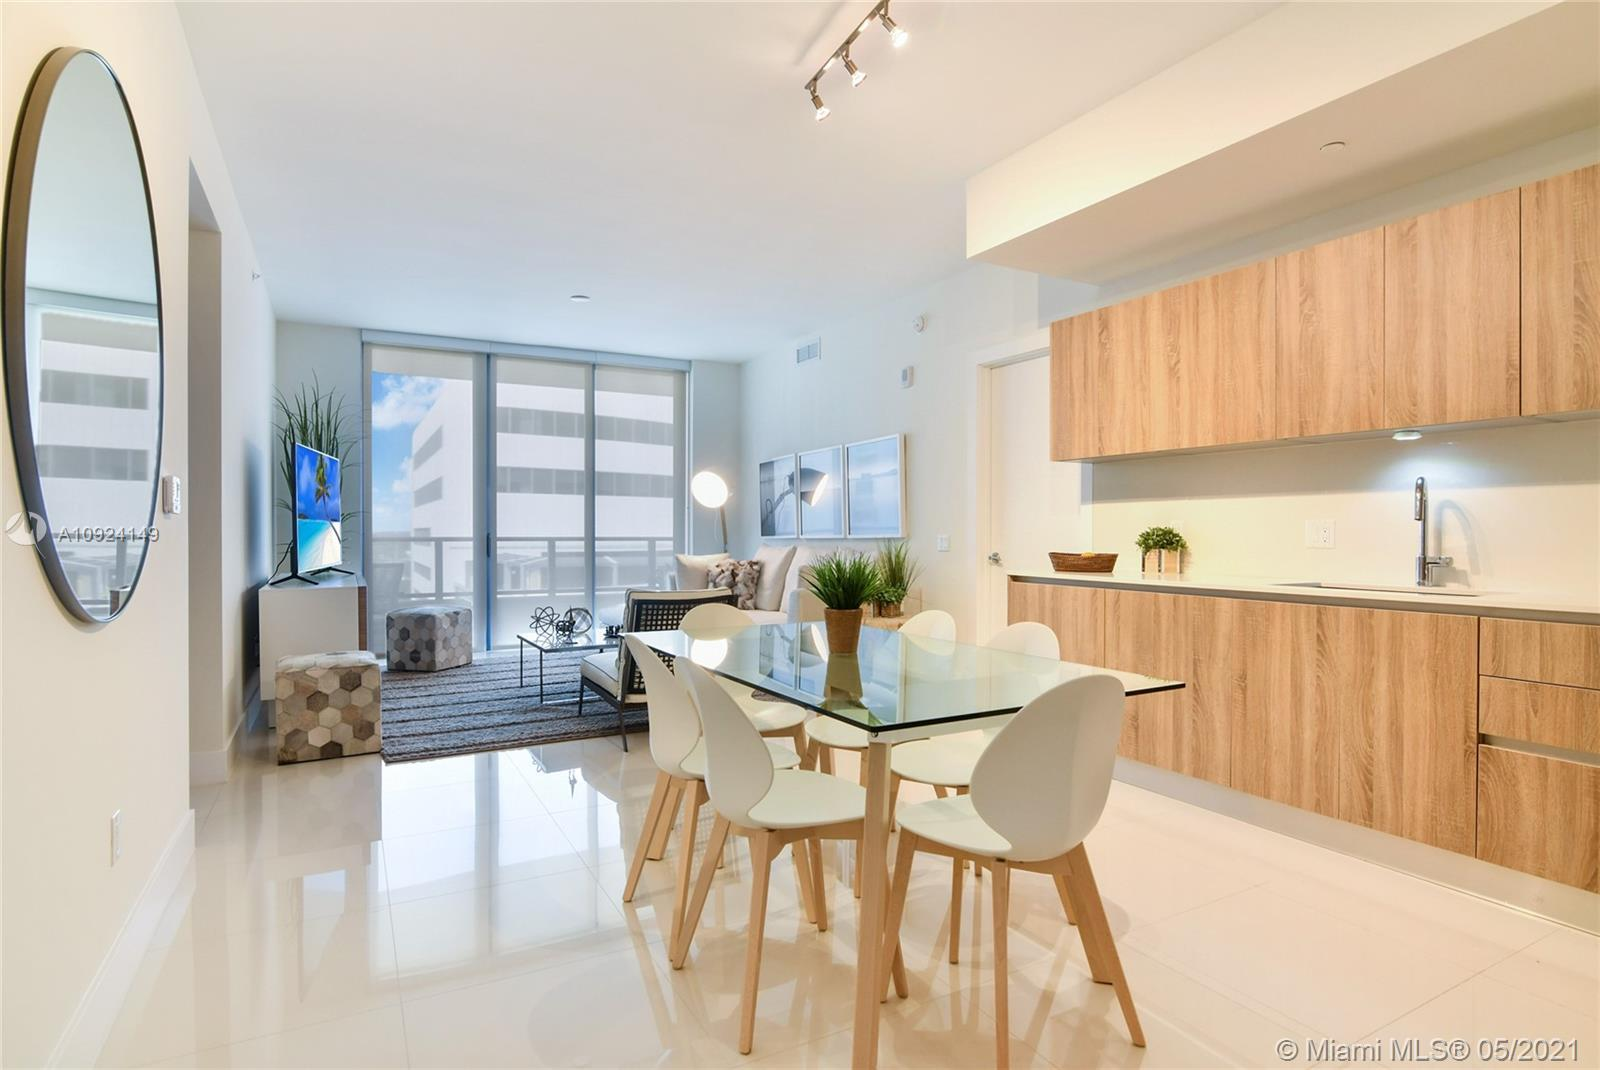 Parksquare Residences Unit #804. Brand new construction 2018 at Aventura Florida. Walking distance t